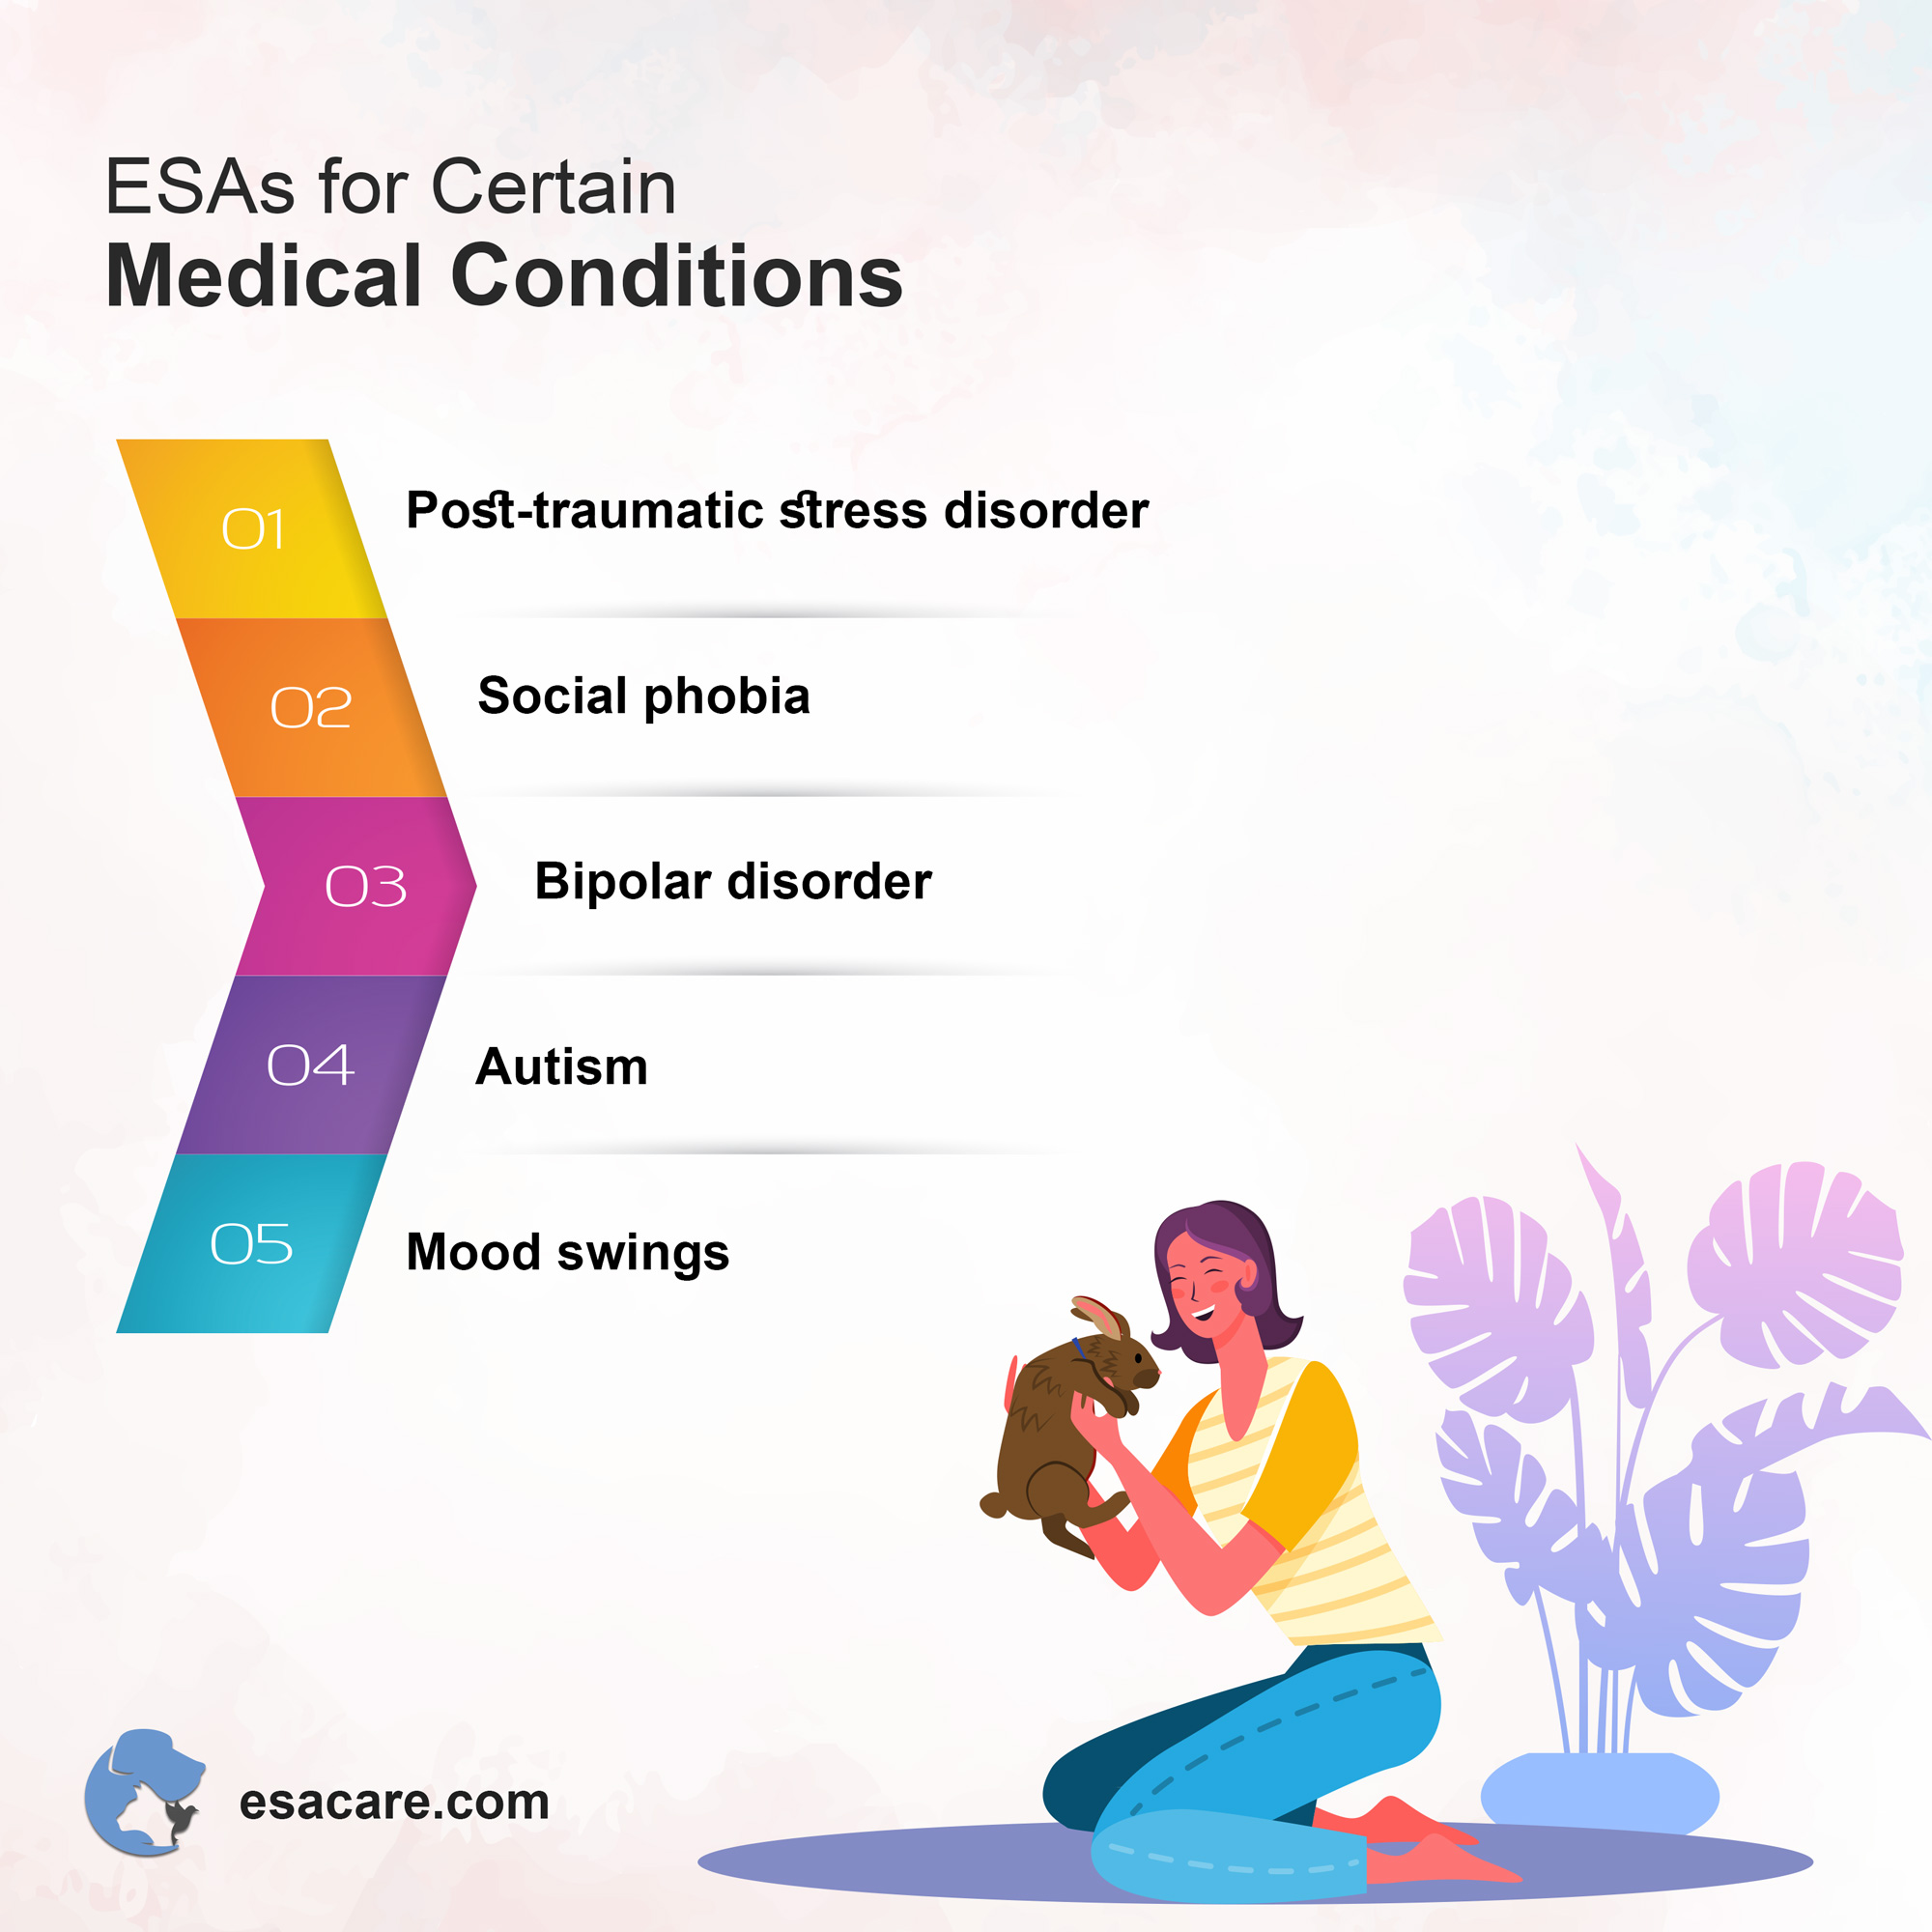 ESAs for medical conditions